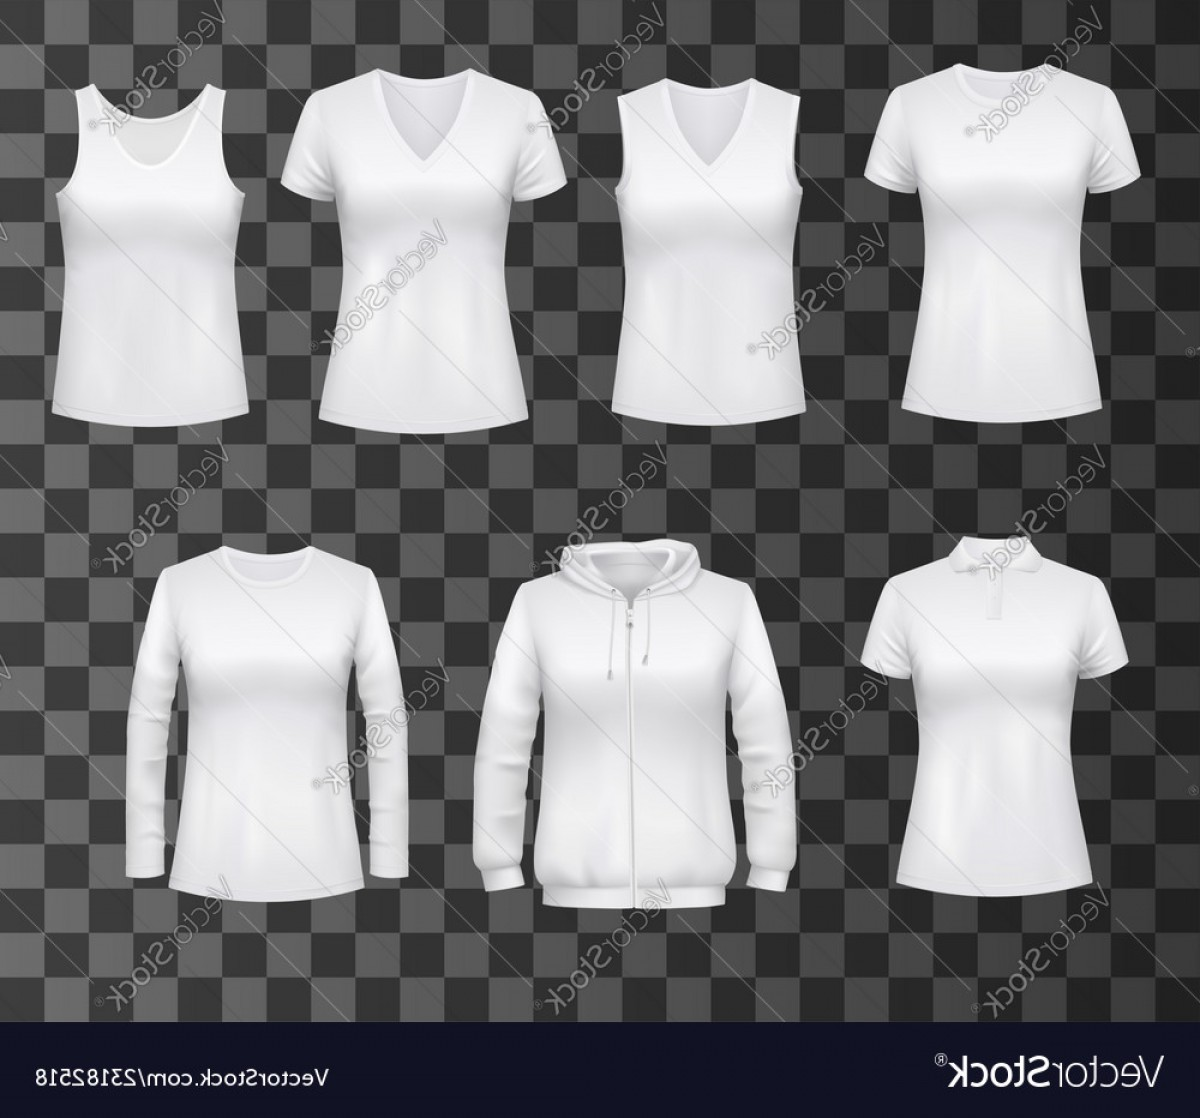 Best Tank Top Vector: White Polo Shirt Mockup Realistic Vectors